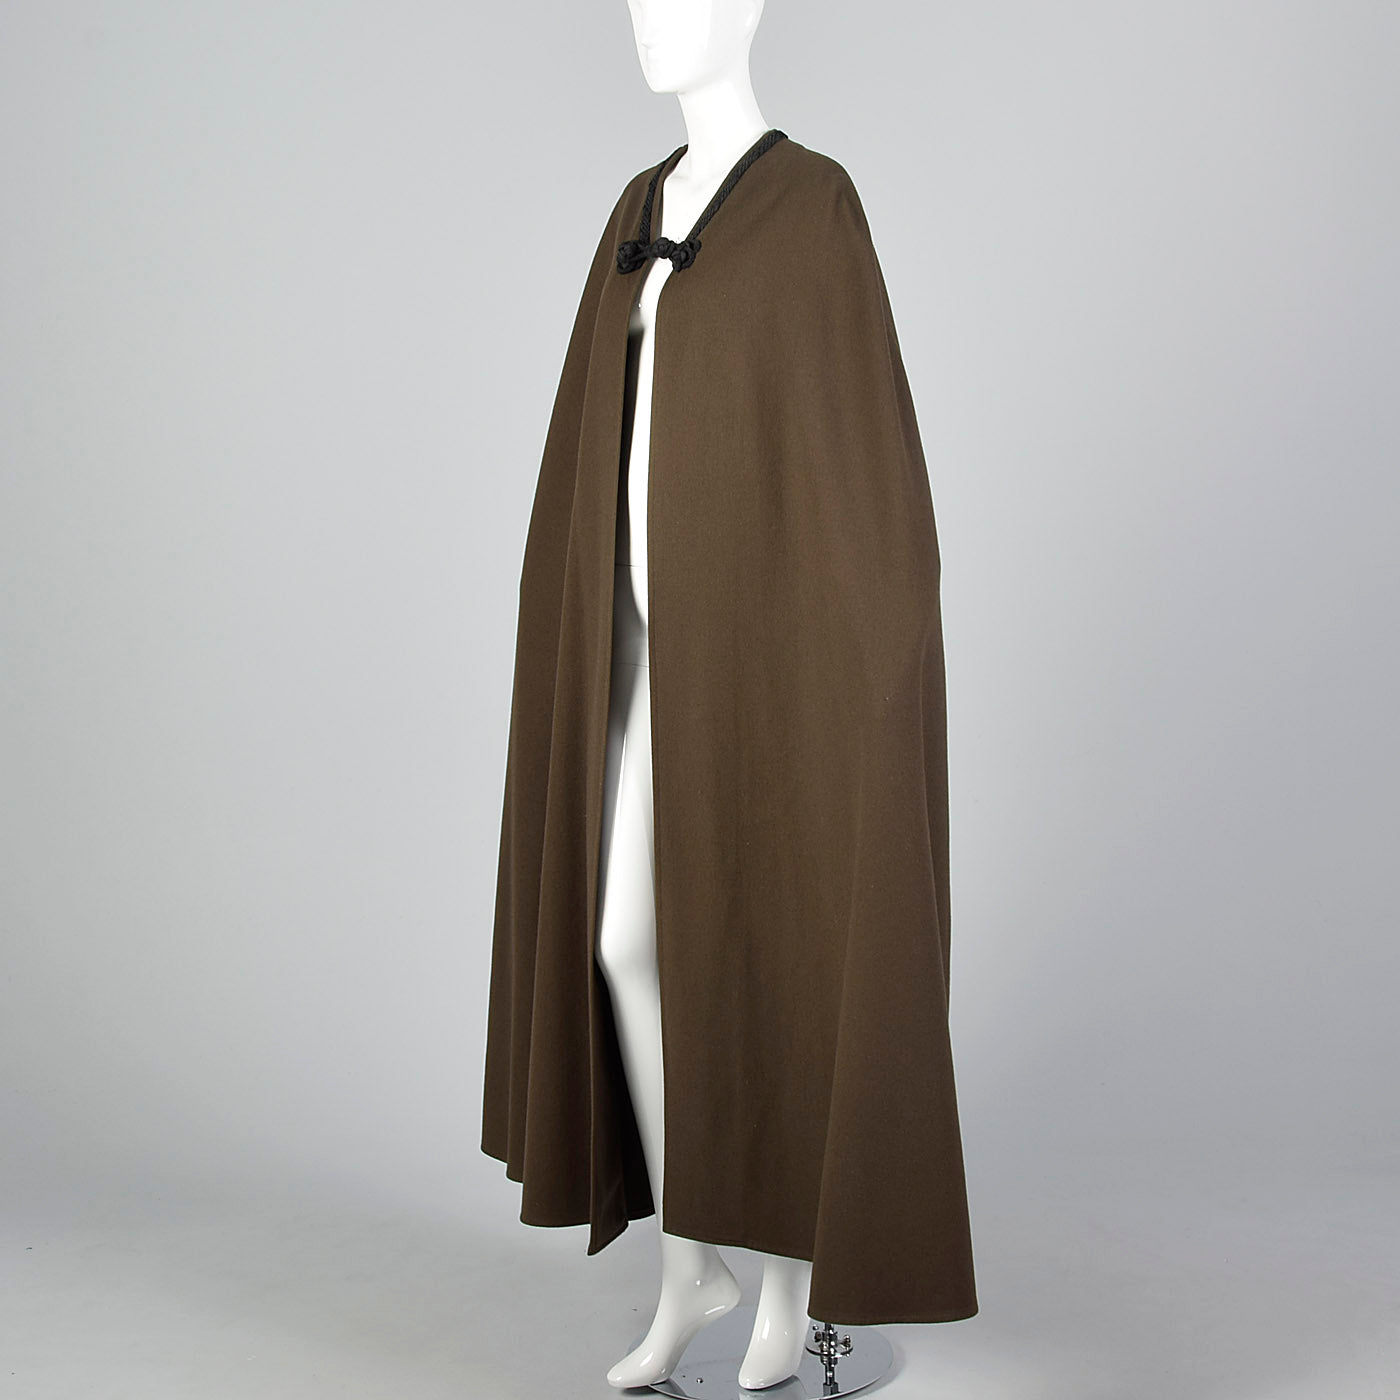 Elegant 1976 Yves Saint Laurent Russian Collection Wool Cape with a Huge Sweep